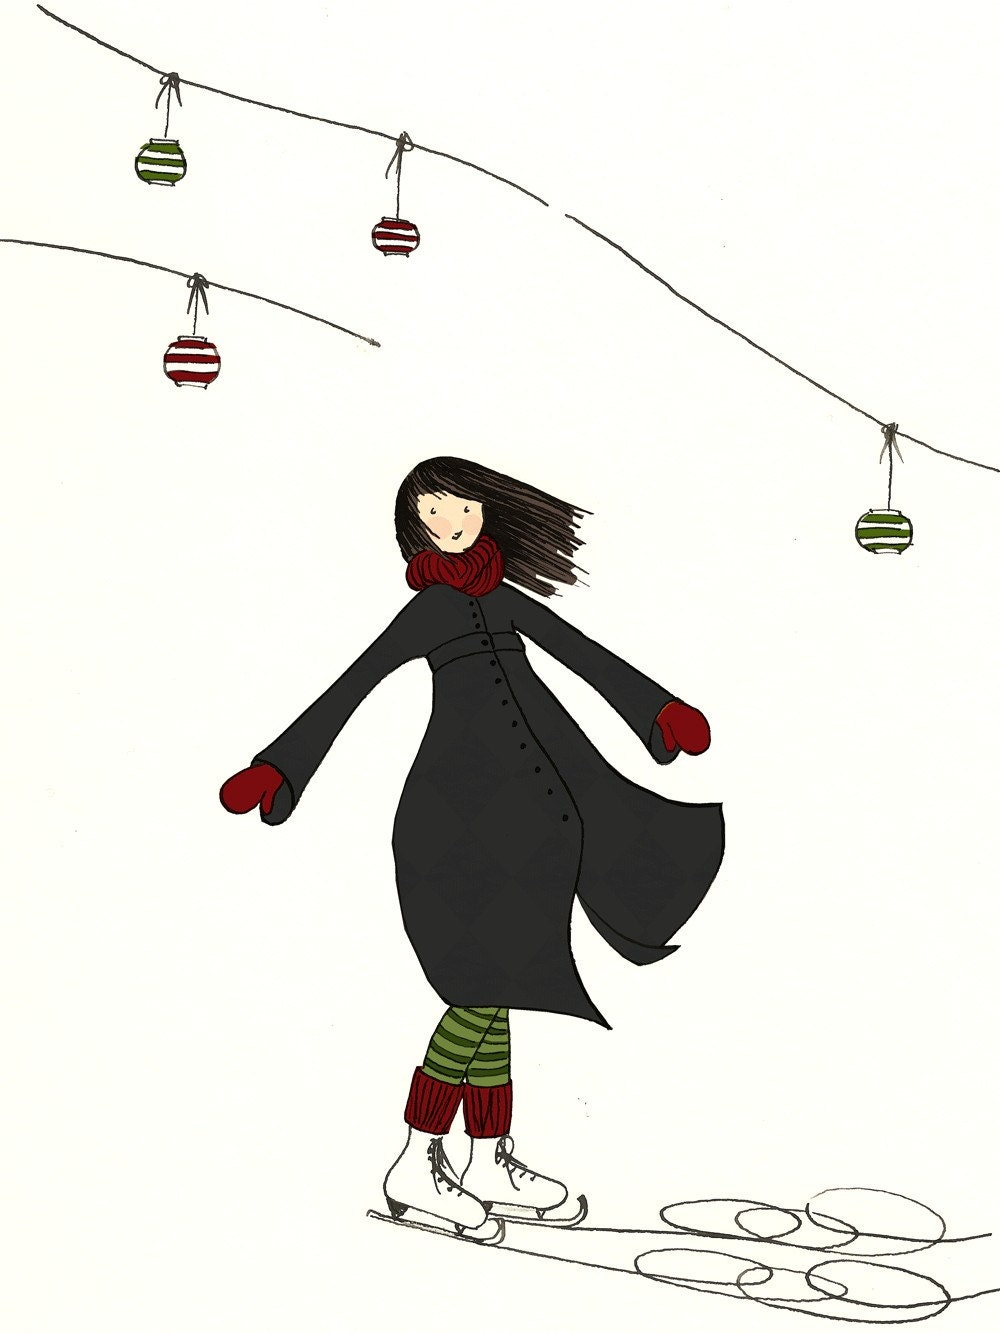 Ice Skating Girl Dancing in Winter Landscape - Signed Art Print - Wall hanging Home decor in white, blue, green and red colors